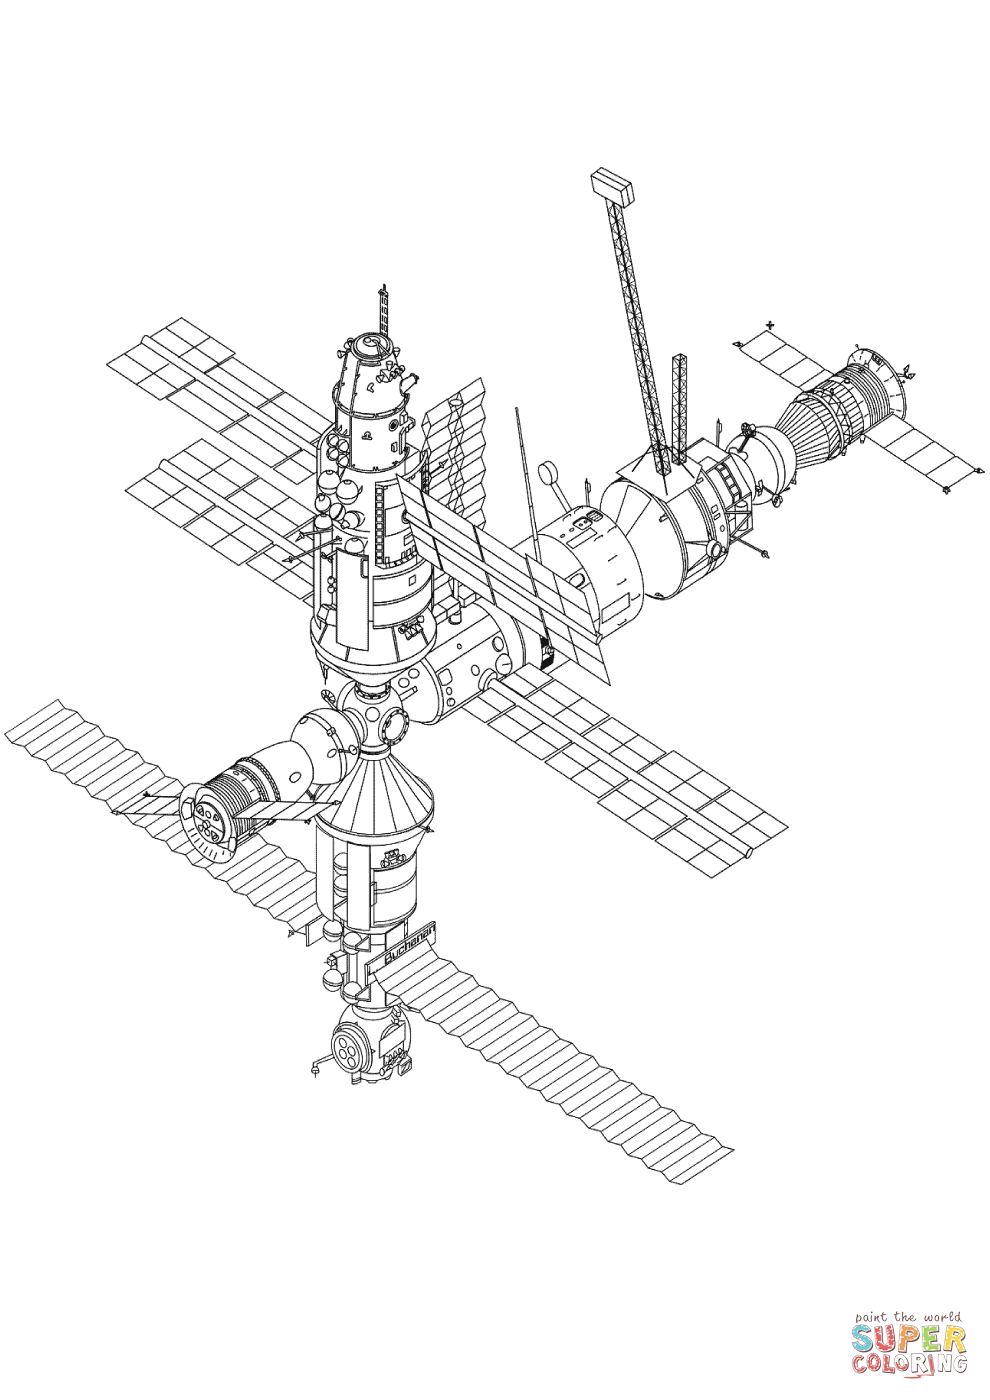 International Space Station coloring